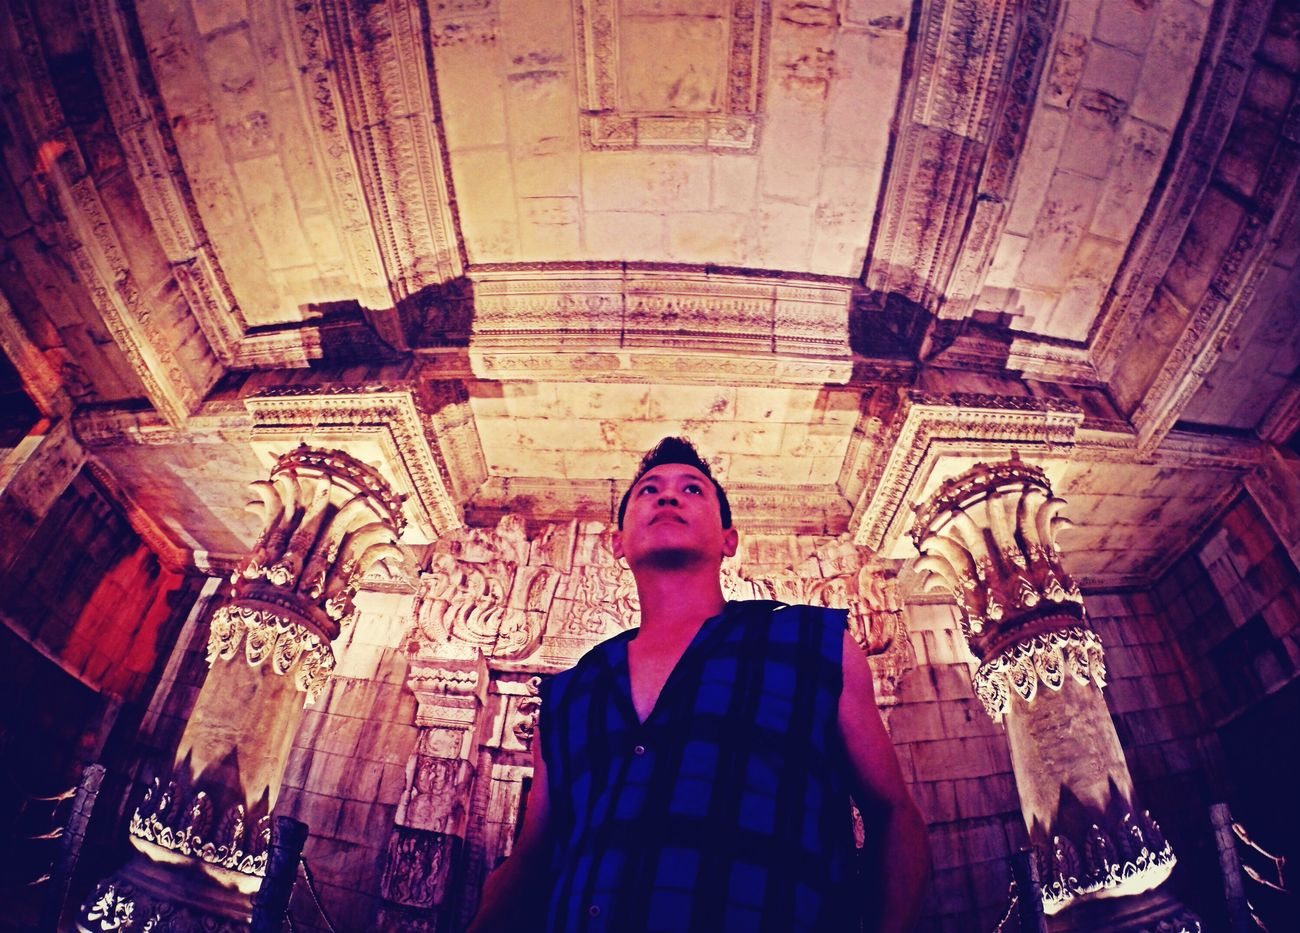 Palace Of The Elephants HDR EyeEm Best Shots - HDR HDR Selfportrait